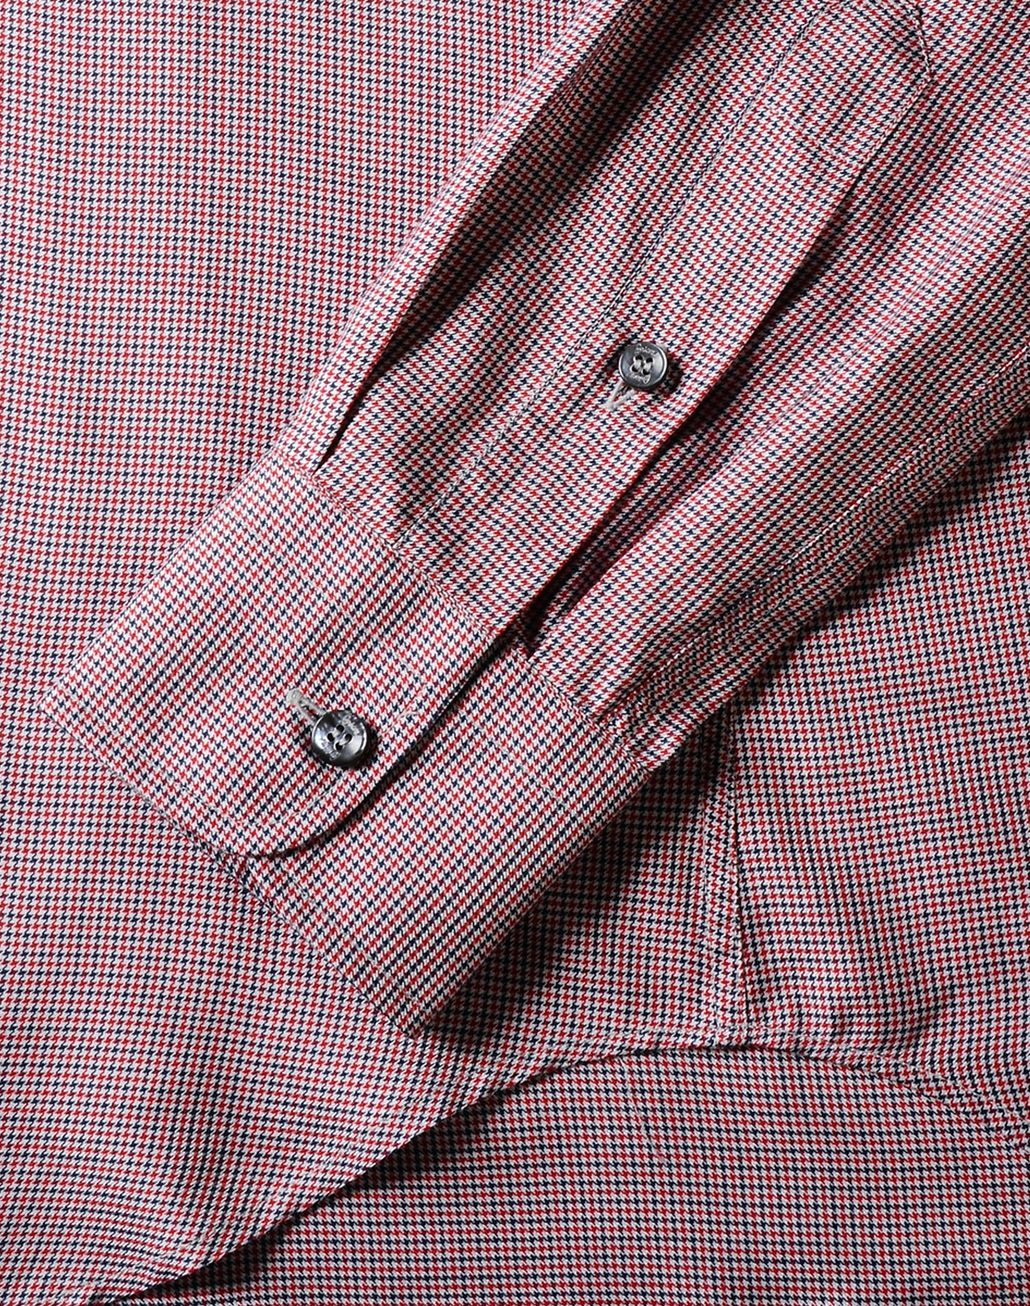 BRIONI LEISURE SHIRT Shirt U e